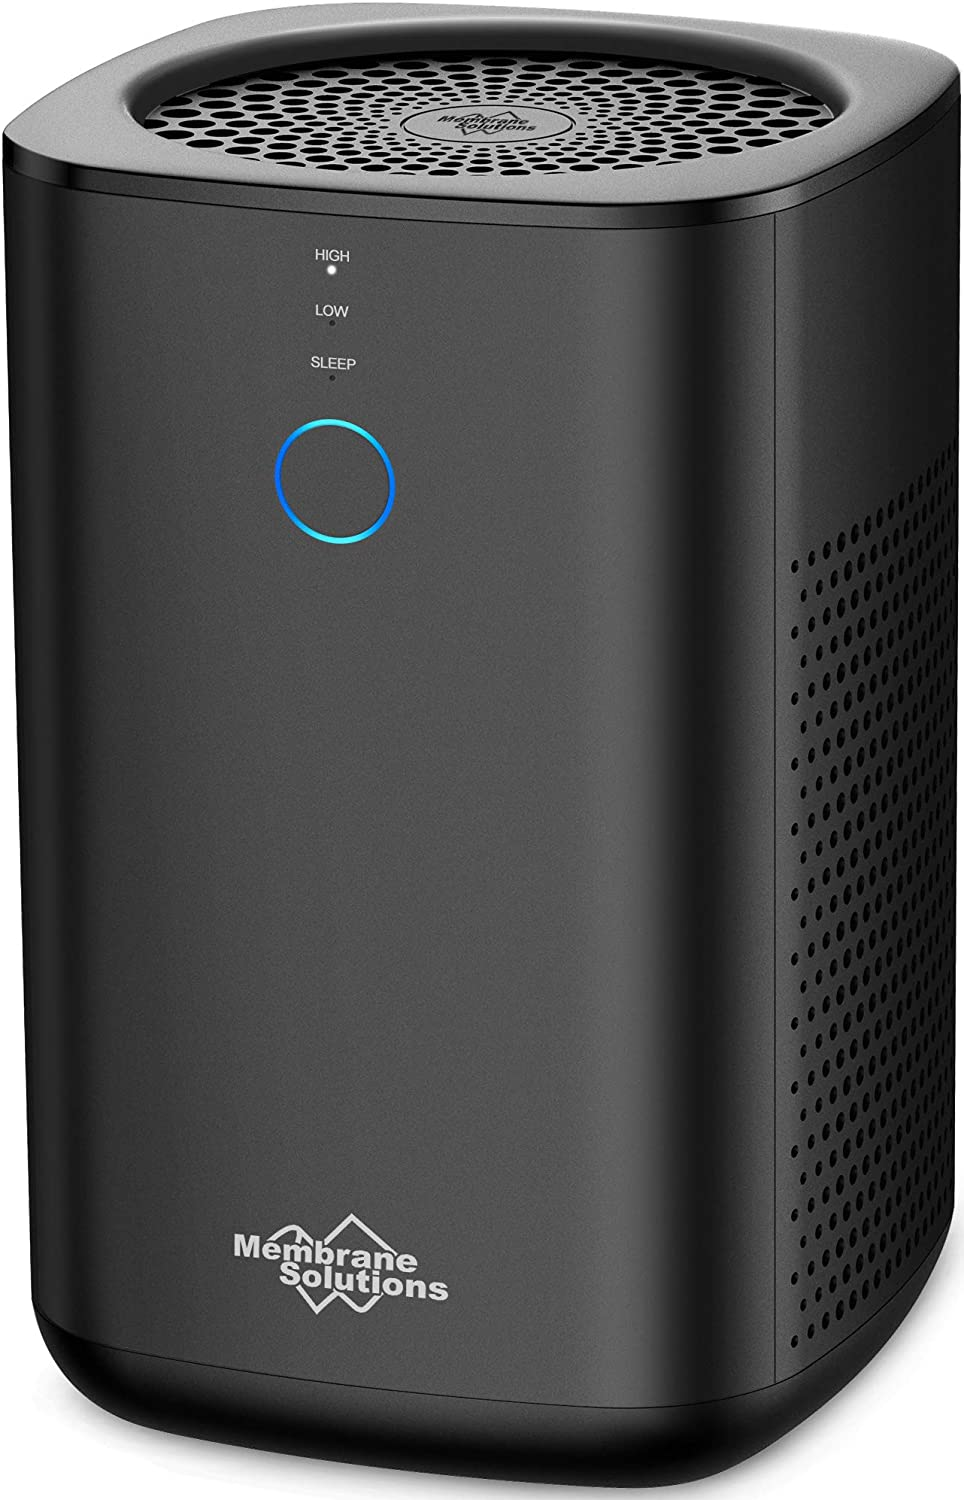 Membrane Solutions Air Purifier for Home with H13 True HEAP Filter, Eliminate Allergies,Smoke,Pollen,Dust,Pollutants,Pets Dander and Odors, 24dB Ultra Quiet Air Cleaner in Bedroom with Touch Screen 2J8